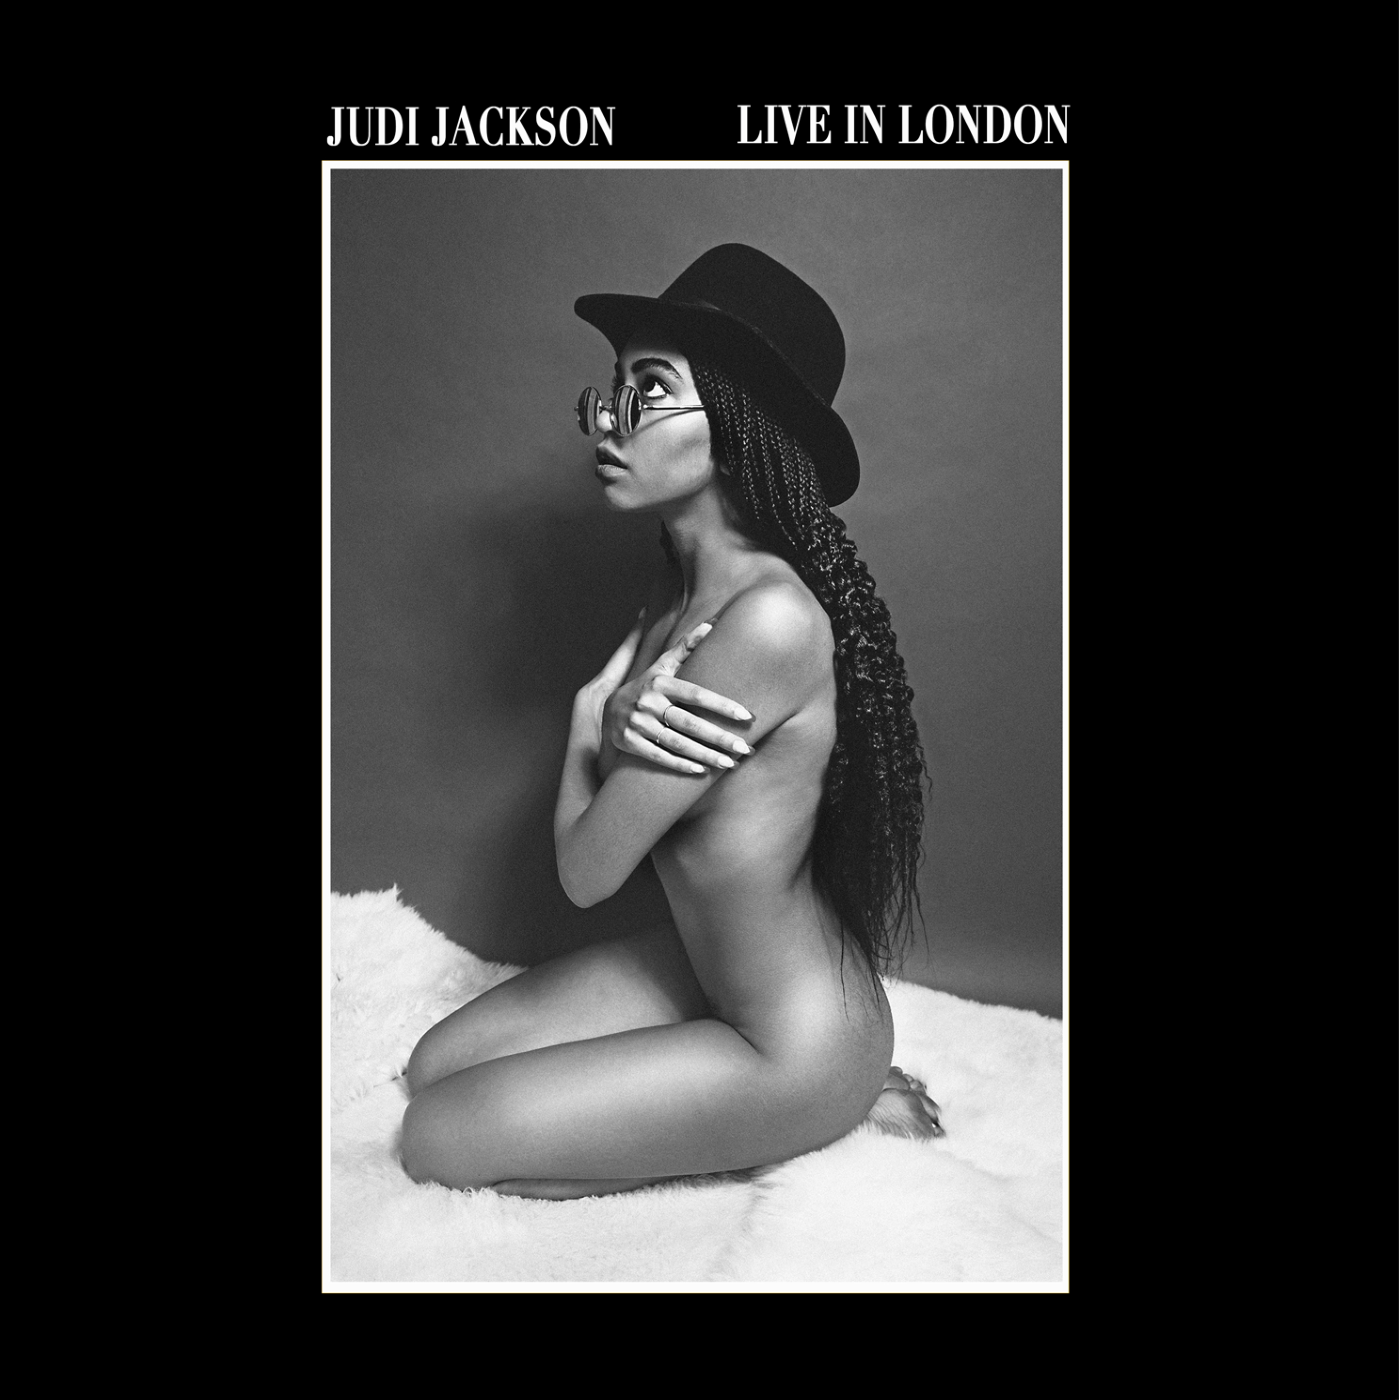 "JUDI JACKSON – ""LIVE IN LONDON"" (OCT 2018) - Judi Jackson, 26 years old from Roanoke, Virginia, USA now based in London, released her debut album, ""Live in London"" Oct 2018 on Lateralize Records. The album was recorded live at Theatre Royal Stratford East, London (June 2018) and released Oct 2018."